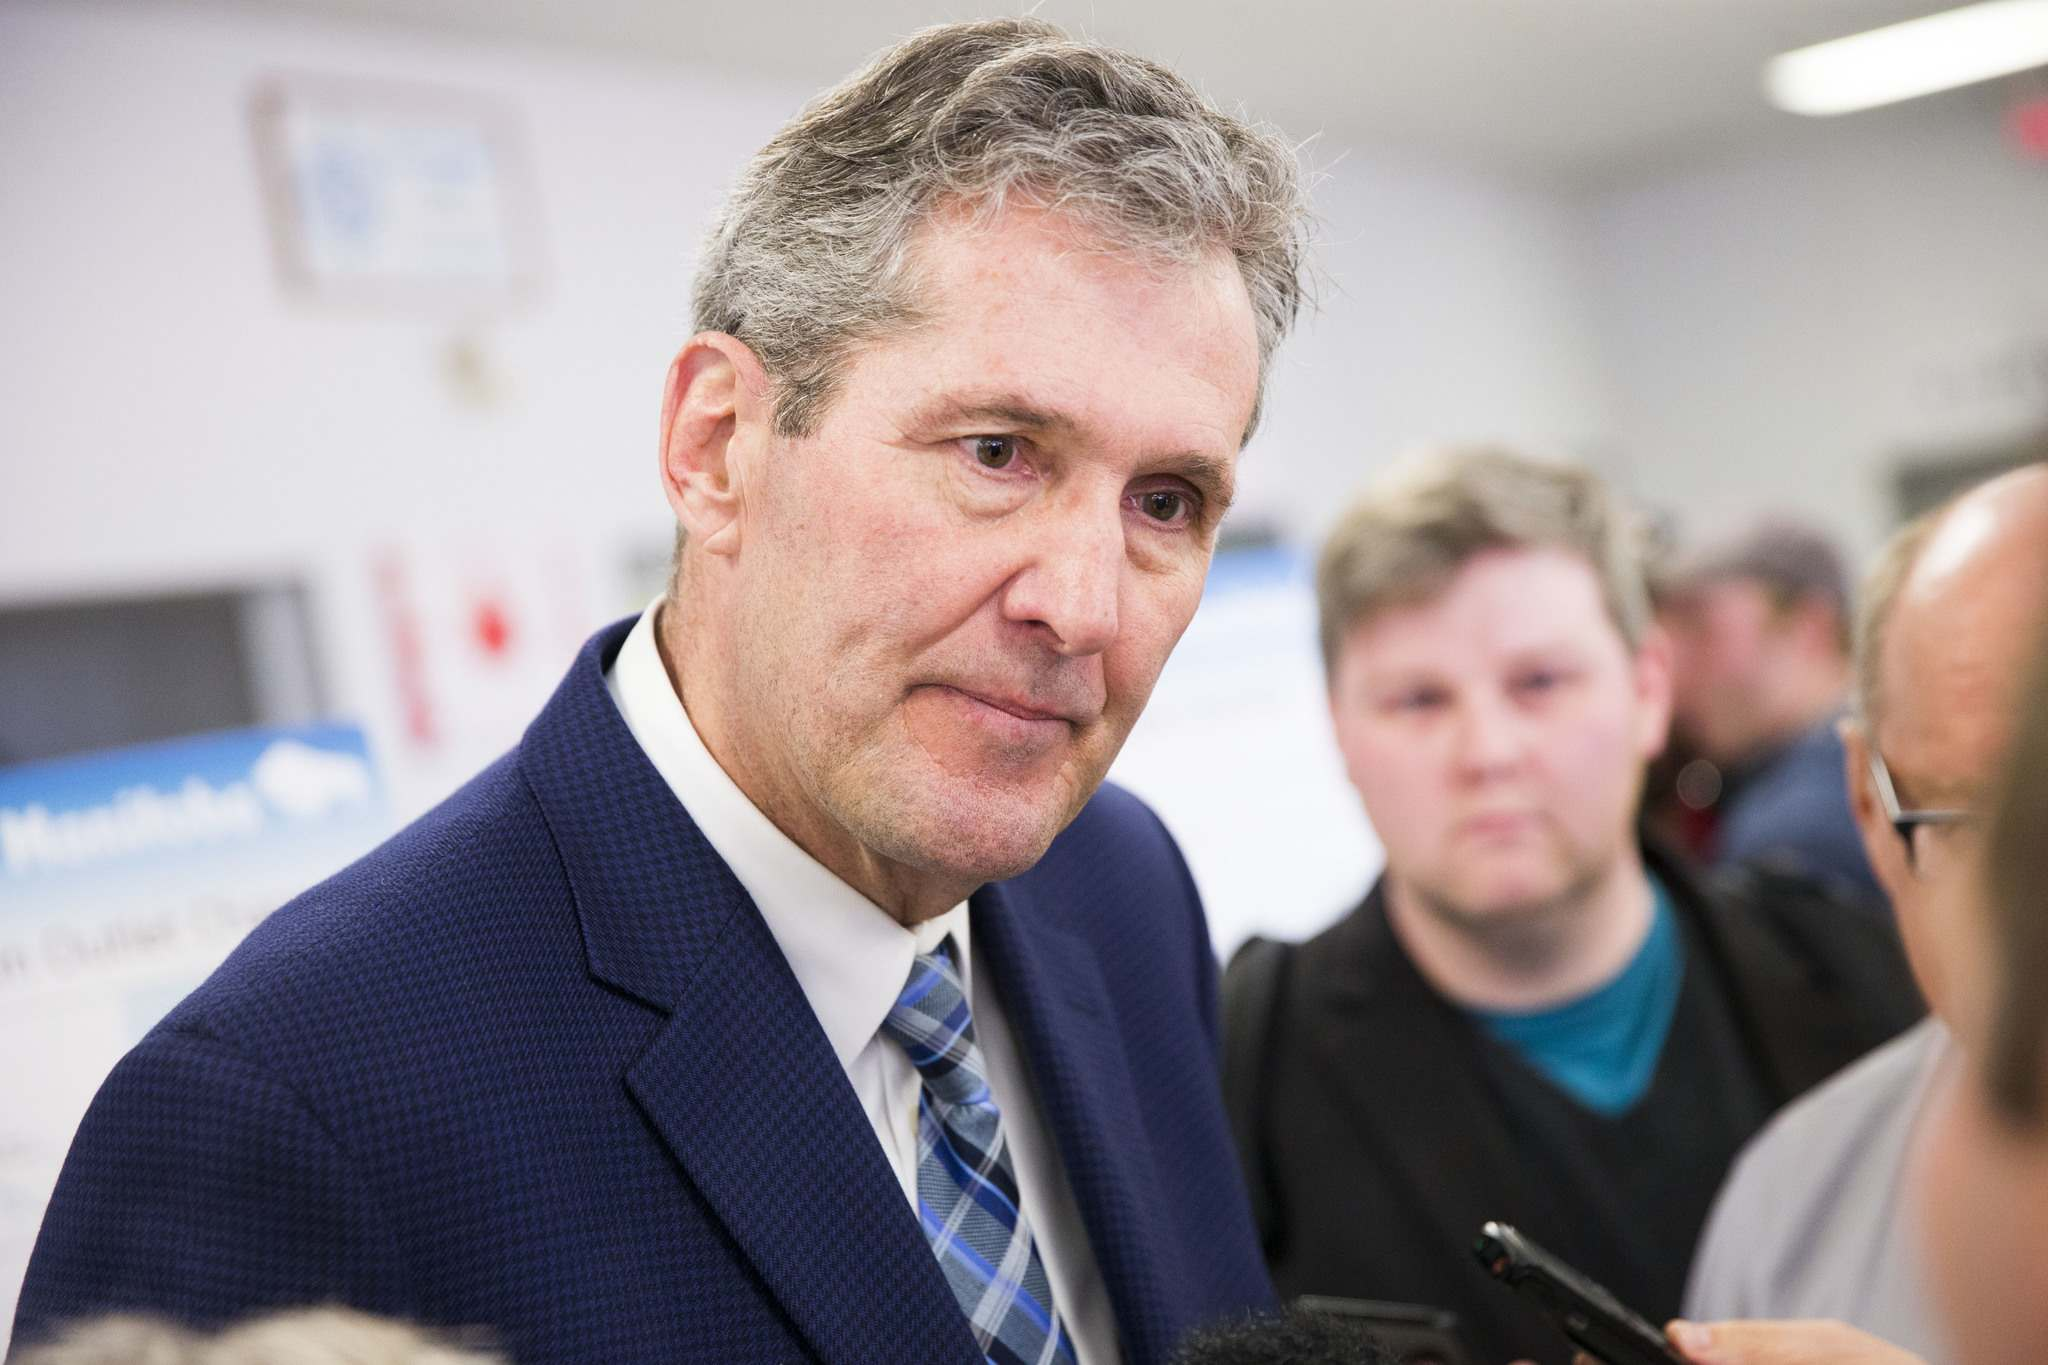 MIKAELA MACKENZIE / WINNIPEG FREE PRESS FILES</p><p>Premier Brian Pallister scrums with the media at a town hall on the proposed Lake Manitoba outlet in St. Laurent, Manitoba on Monday.</p>